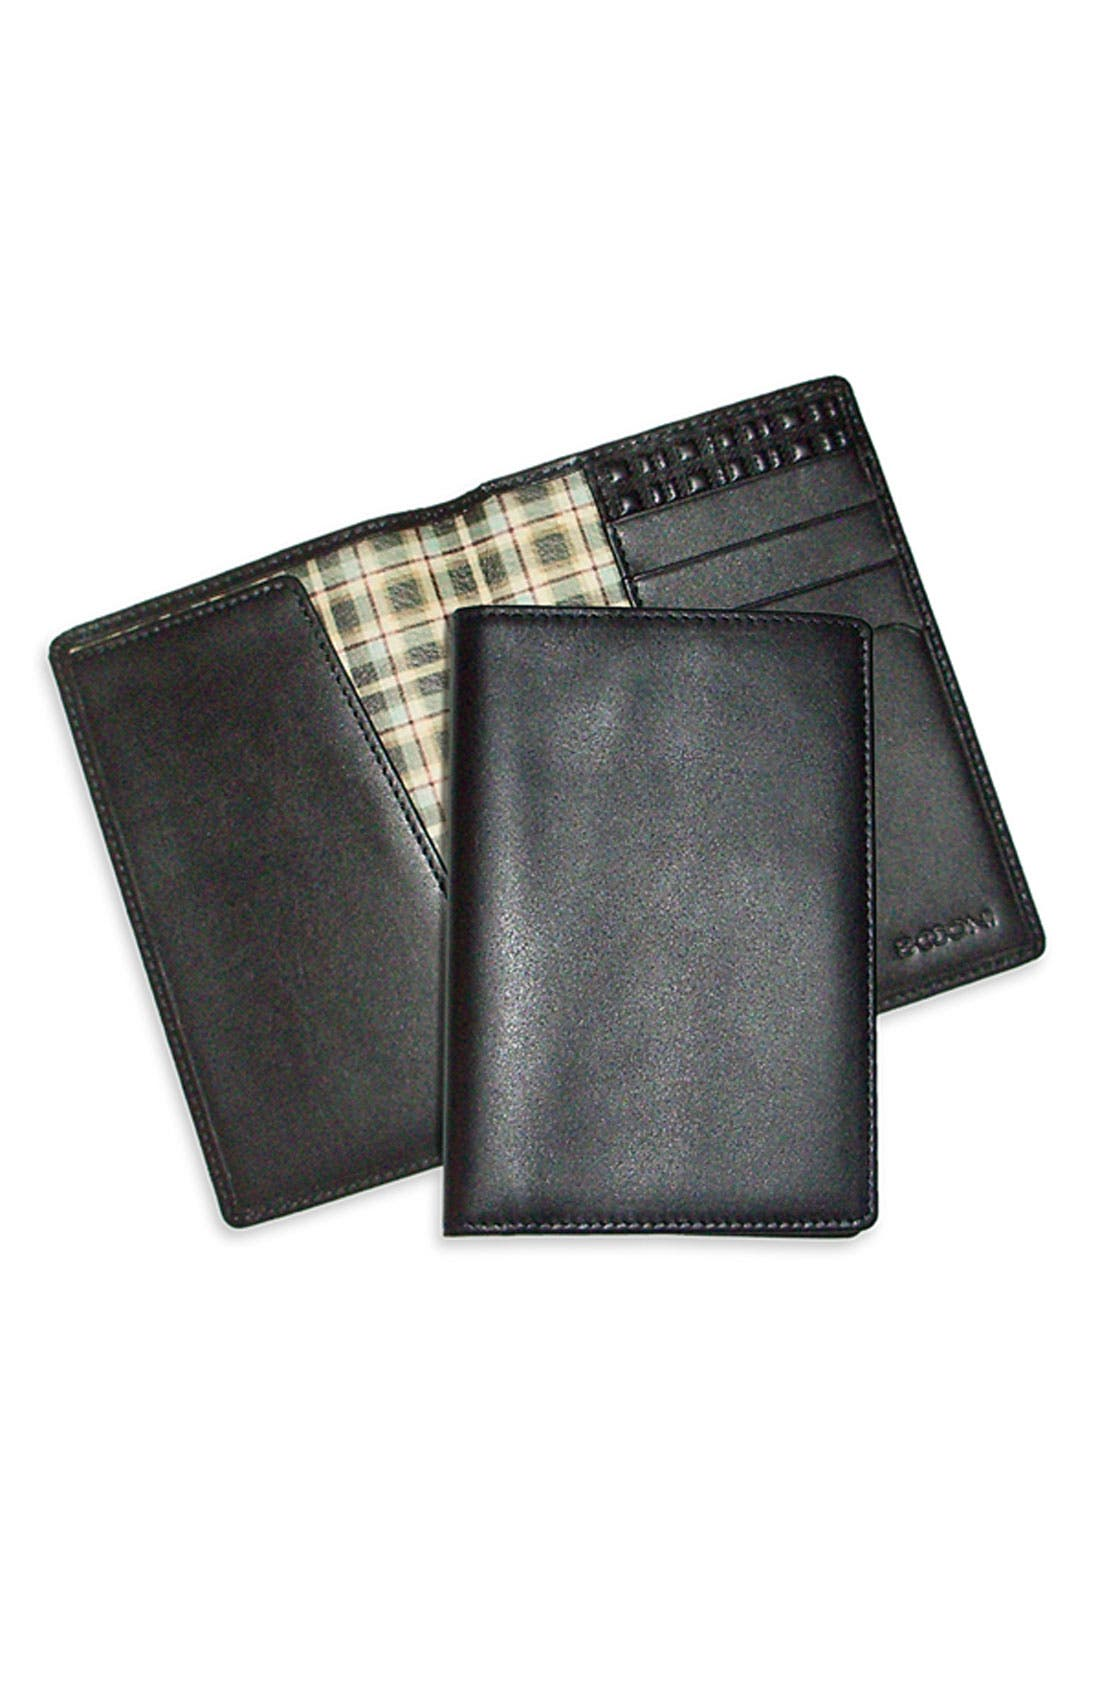 Main Image - Boconi Passport Case